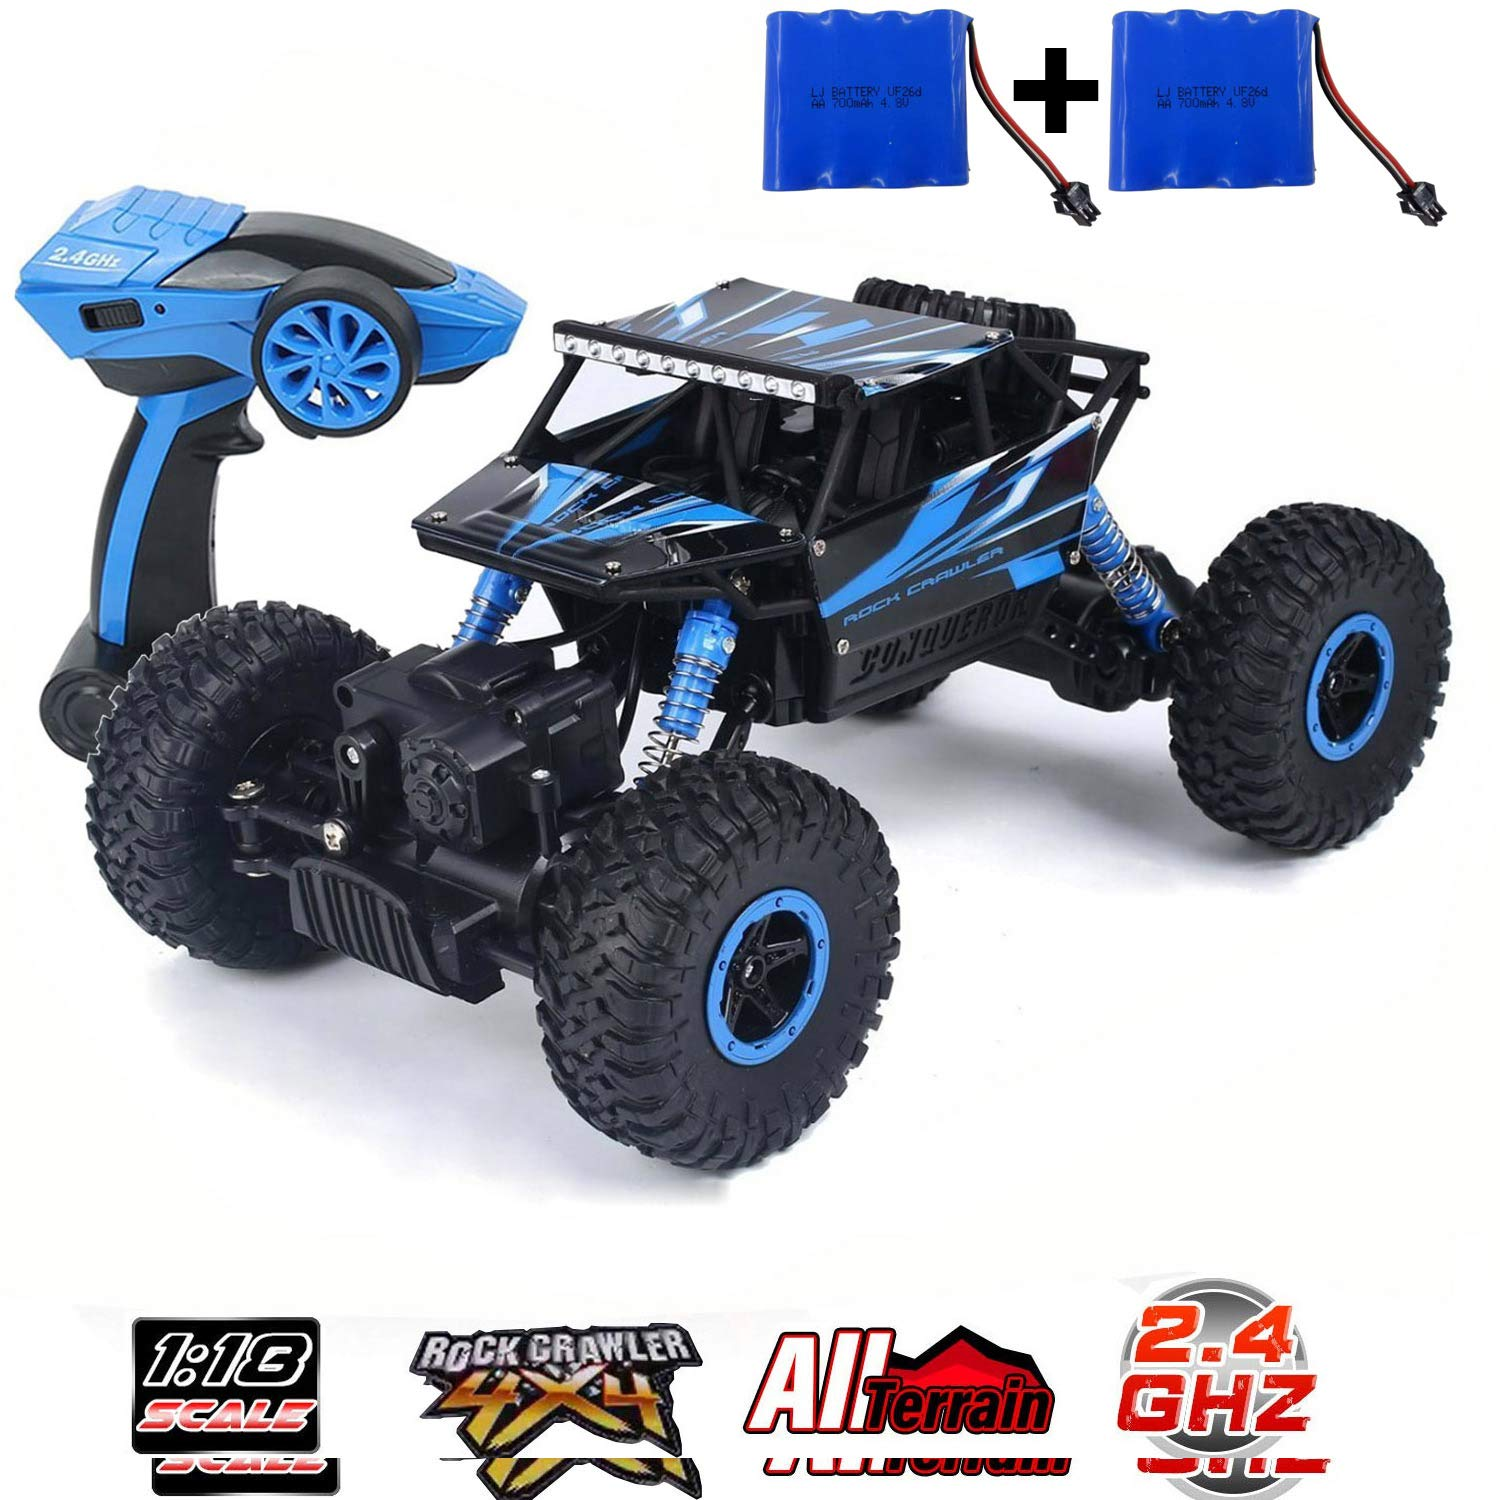 SZJJX RC Cars Off-Road Remote Control Car Trucks Vehicle 2.4Ghz 4WD Powerful 1: 18 Racing Climbing Cars Radio Electric Rock Crawler Buggy Hobby Toy for Kids Gift-Blue by SZJJX